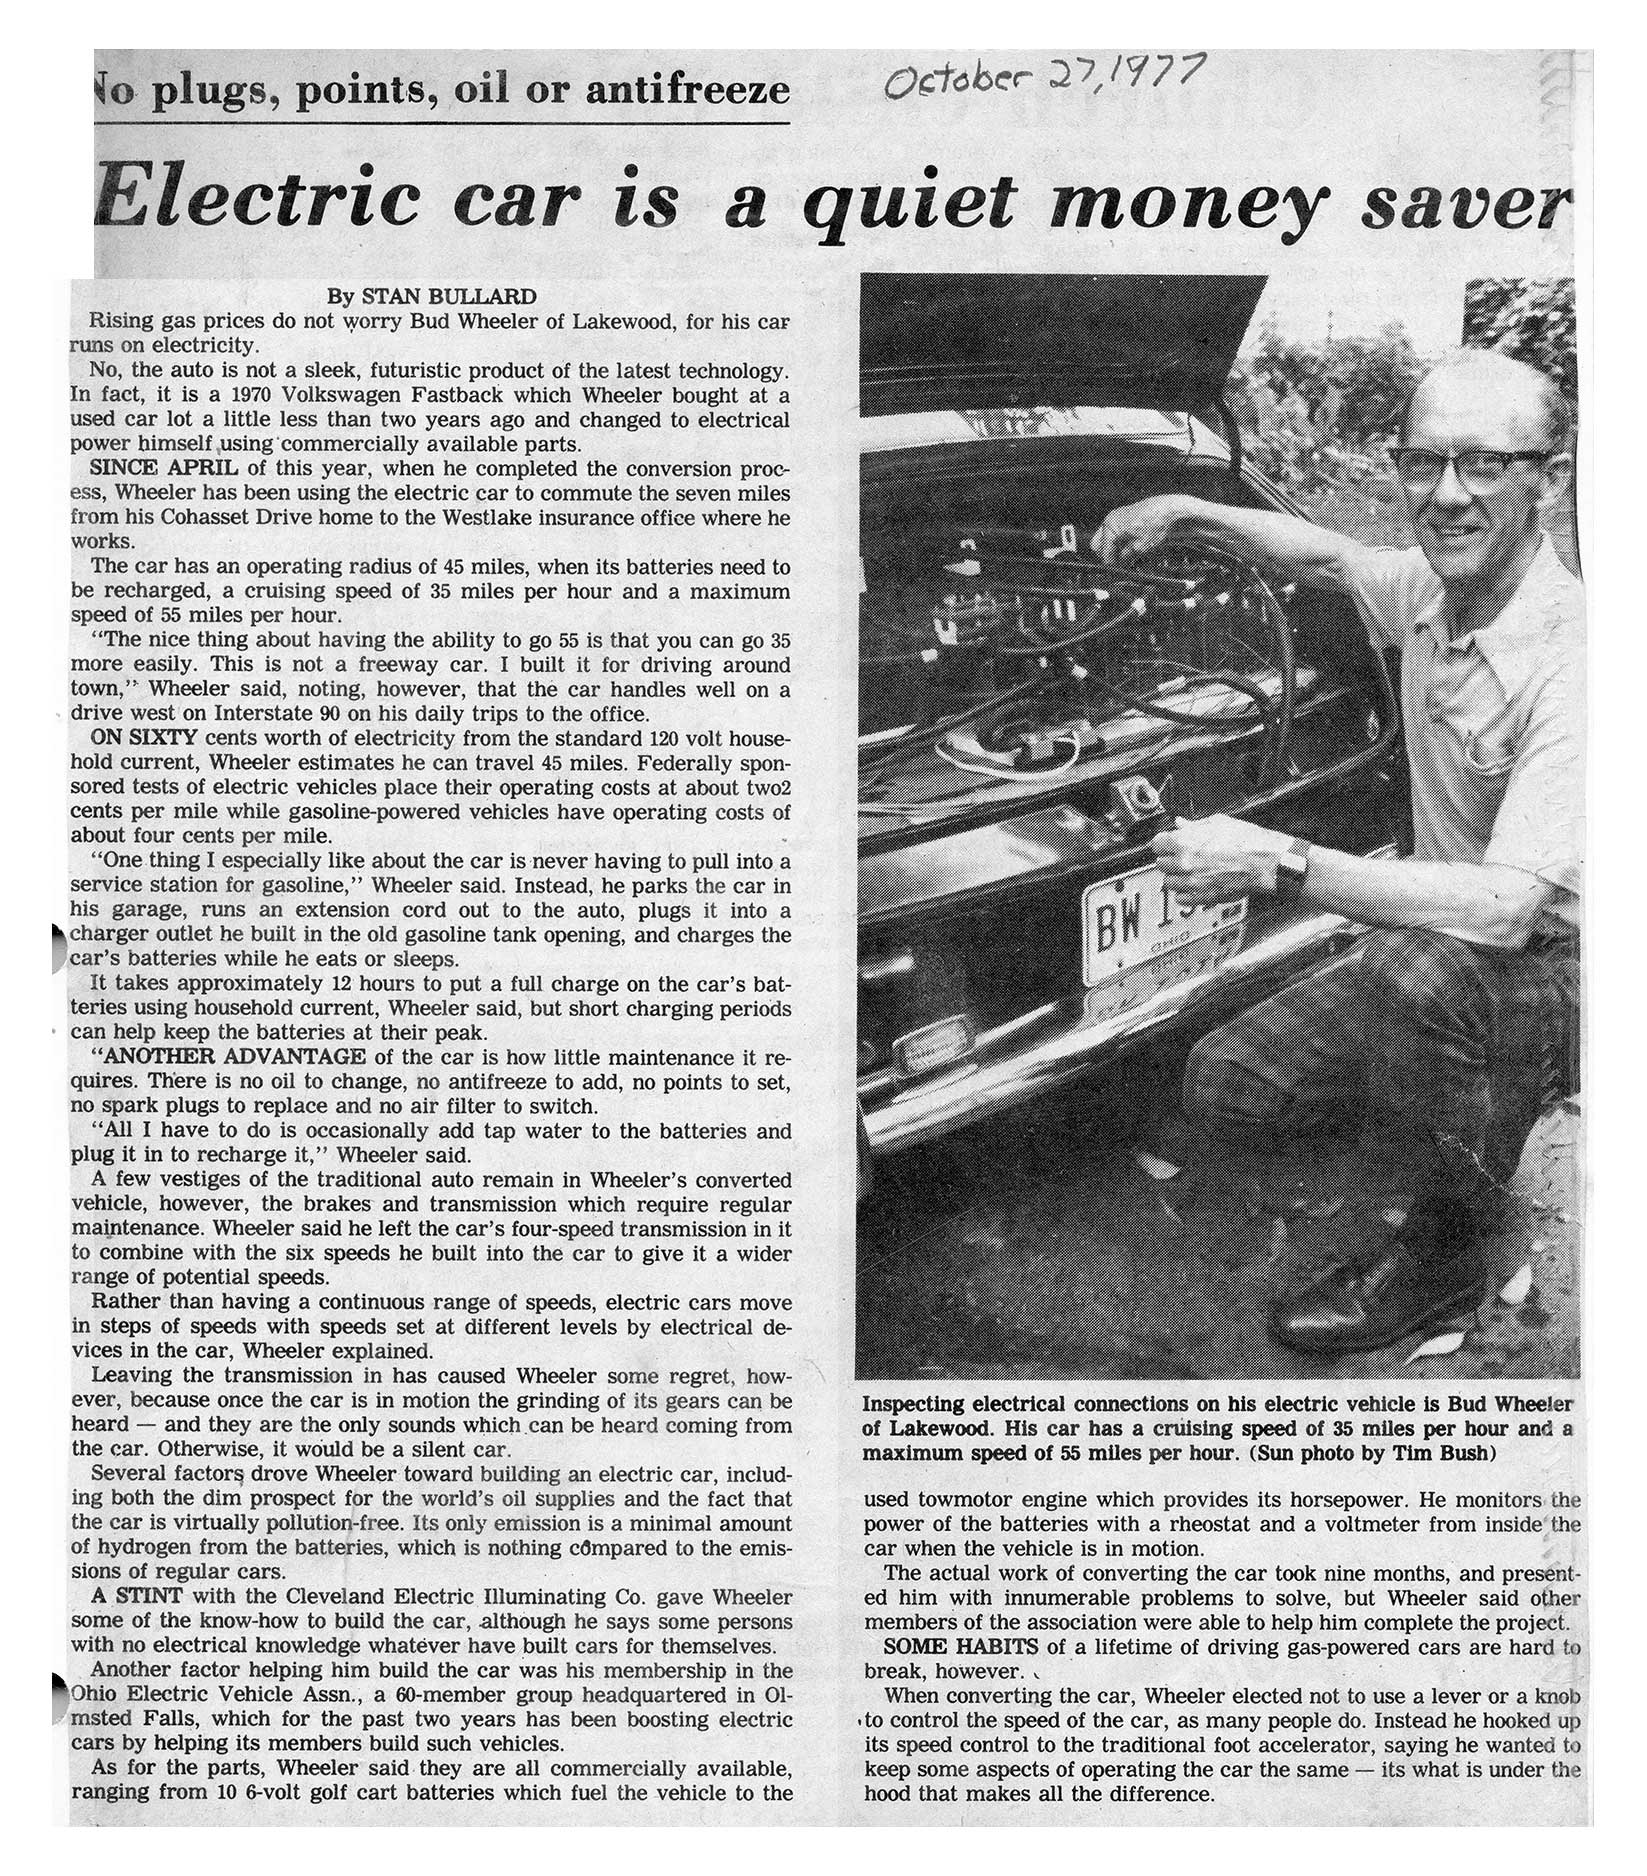 Plain Dealer Profile of Bud Wheeler's Electric Car